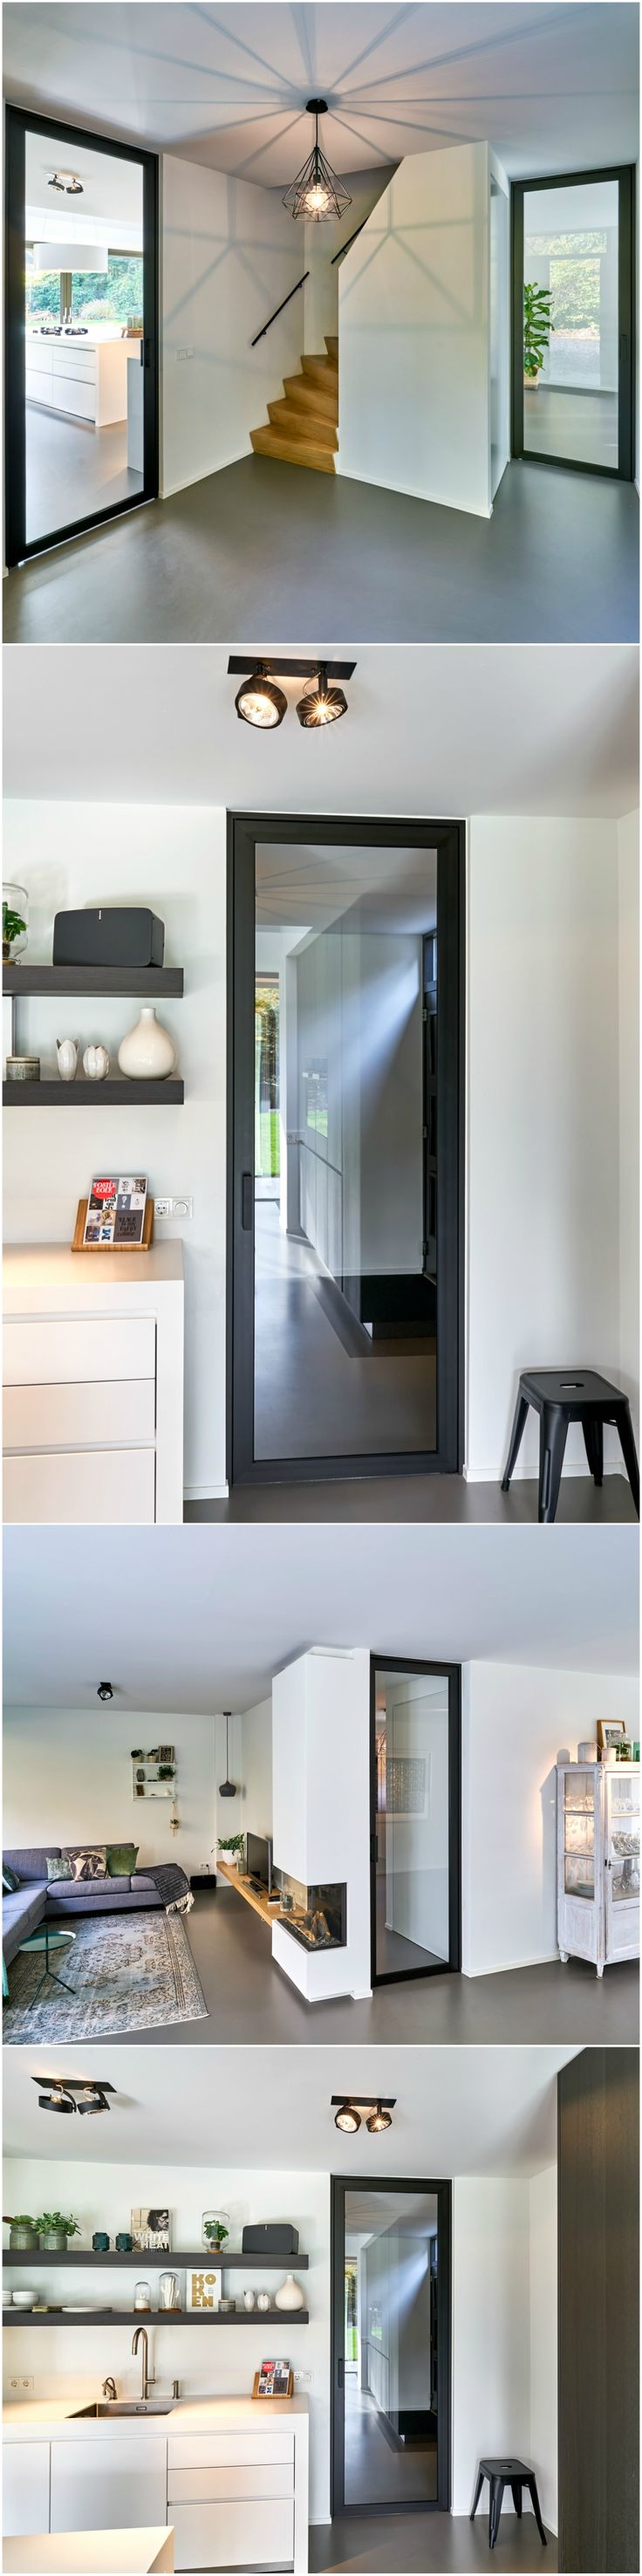 Best 25 modern interior doors ideas on pinterest interior best 25 modern interior doors ideas on pinterest interior design kitchen modern bathrooms and modern interiors eventelaan Gallery